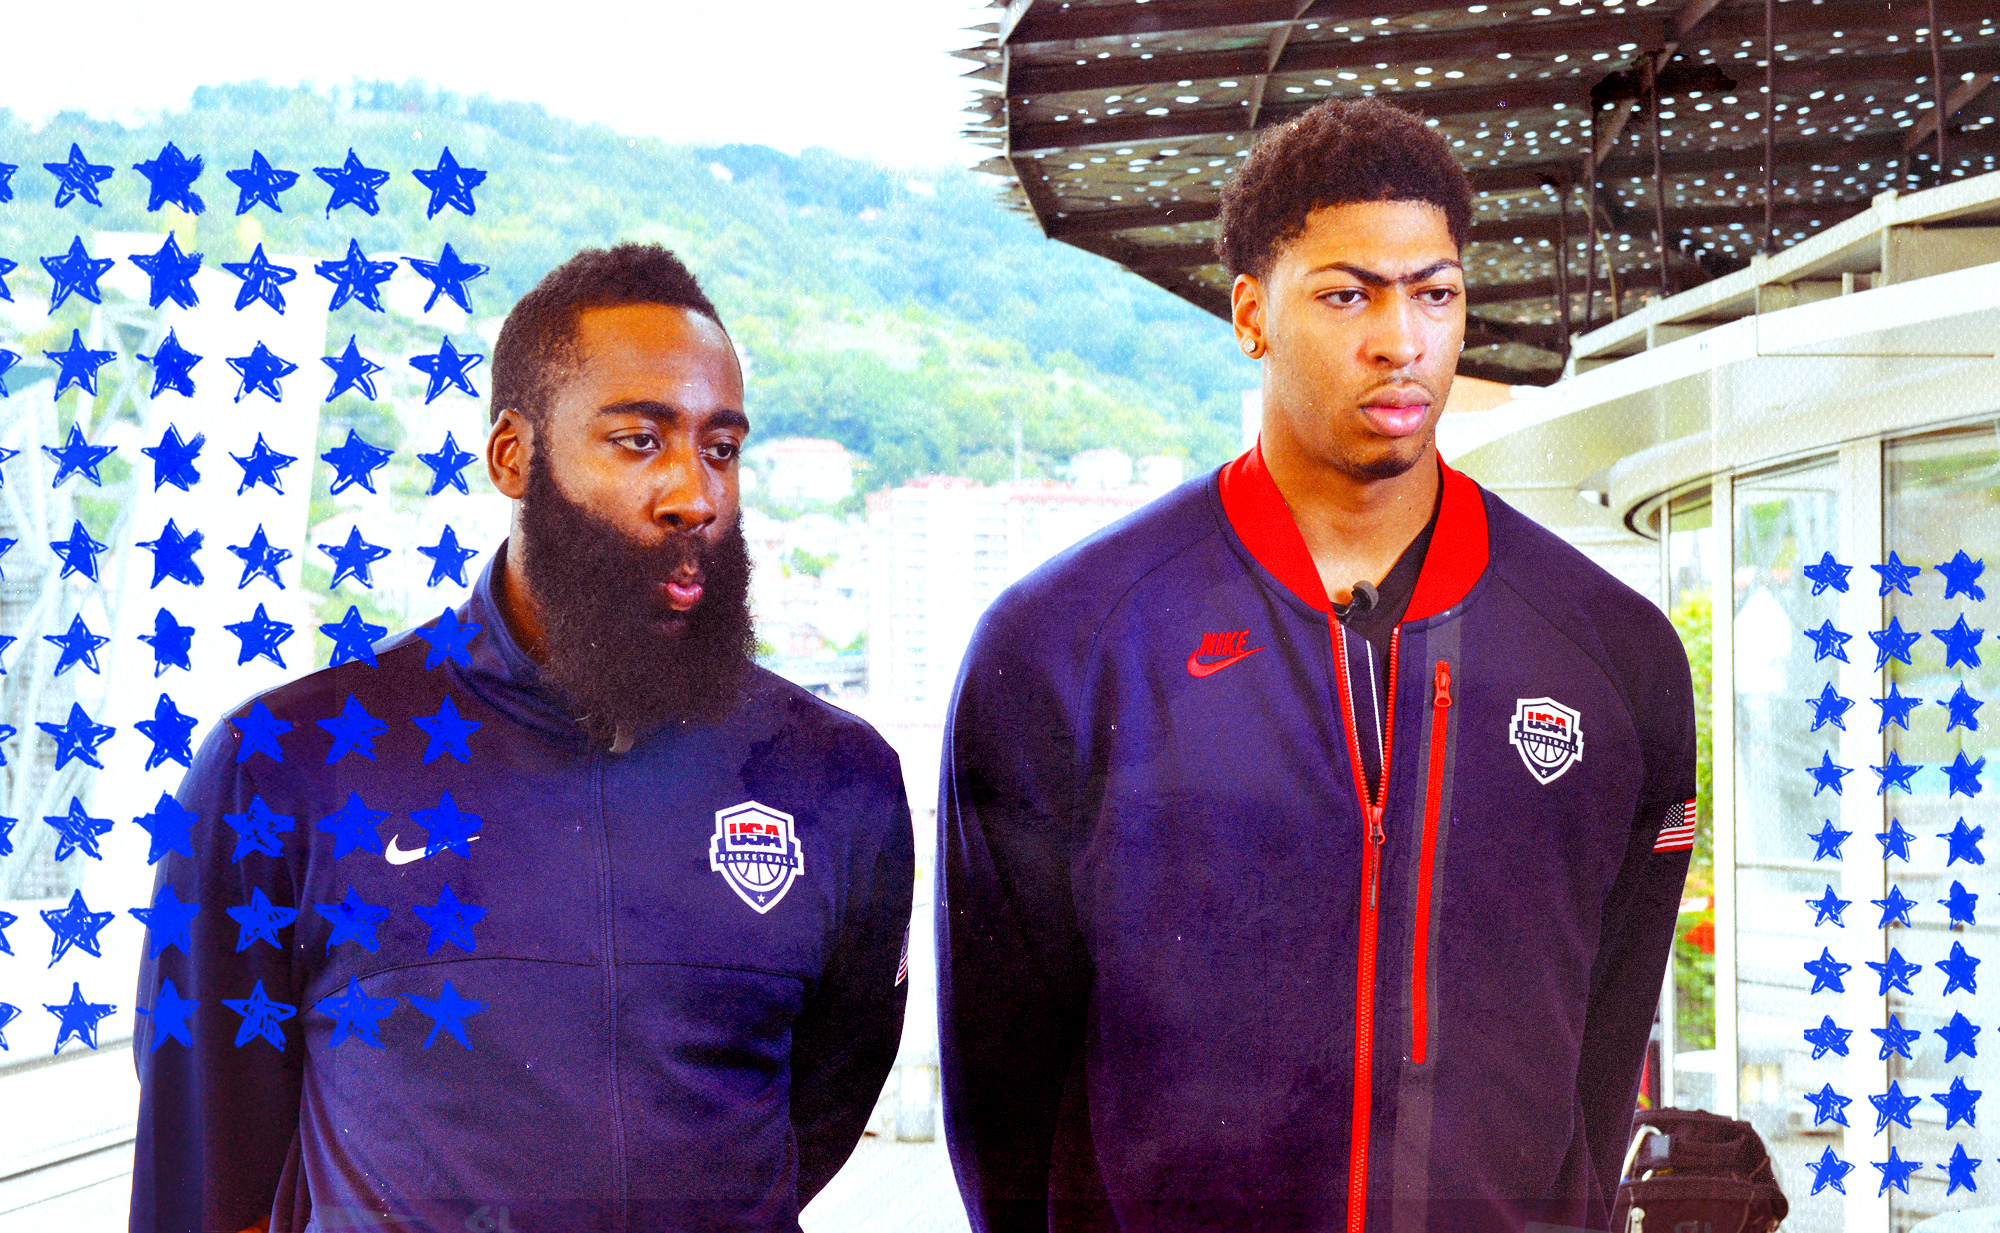 James Harden and Anthony Davis standing, from left to right.